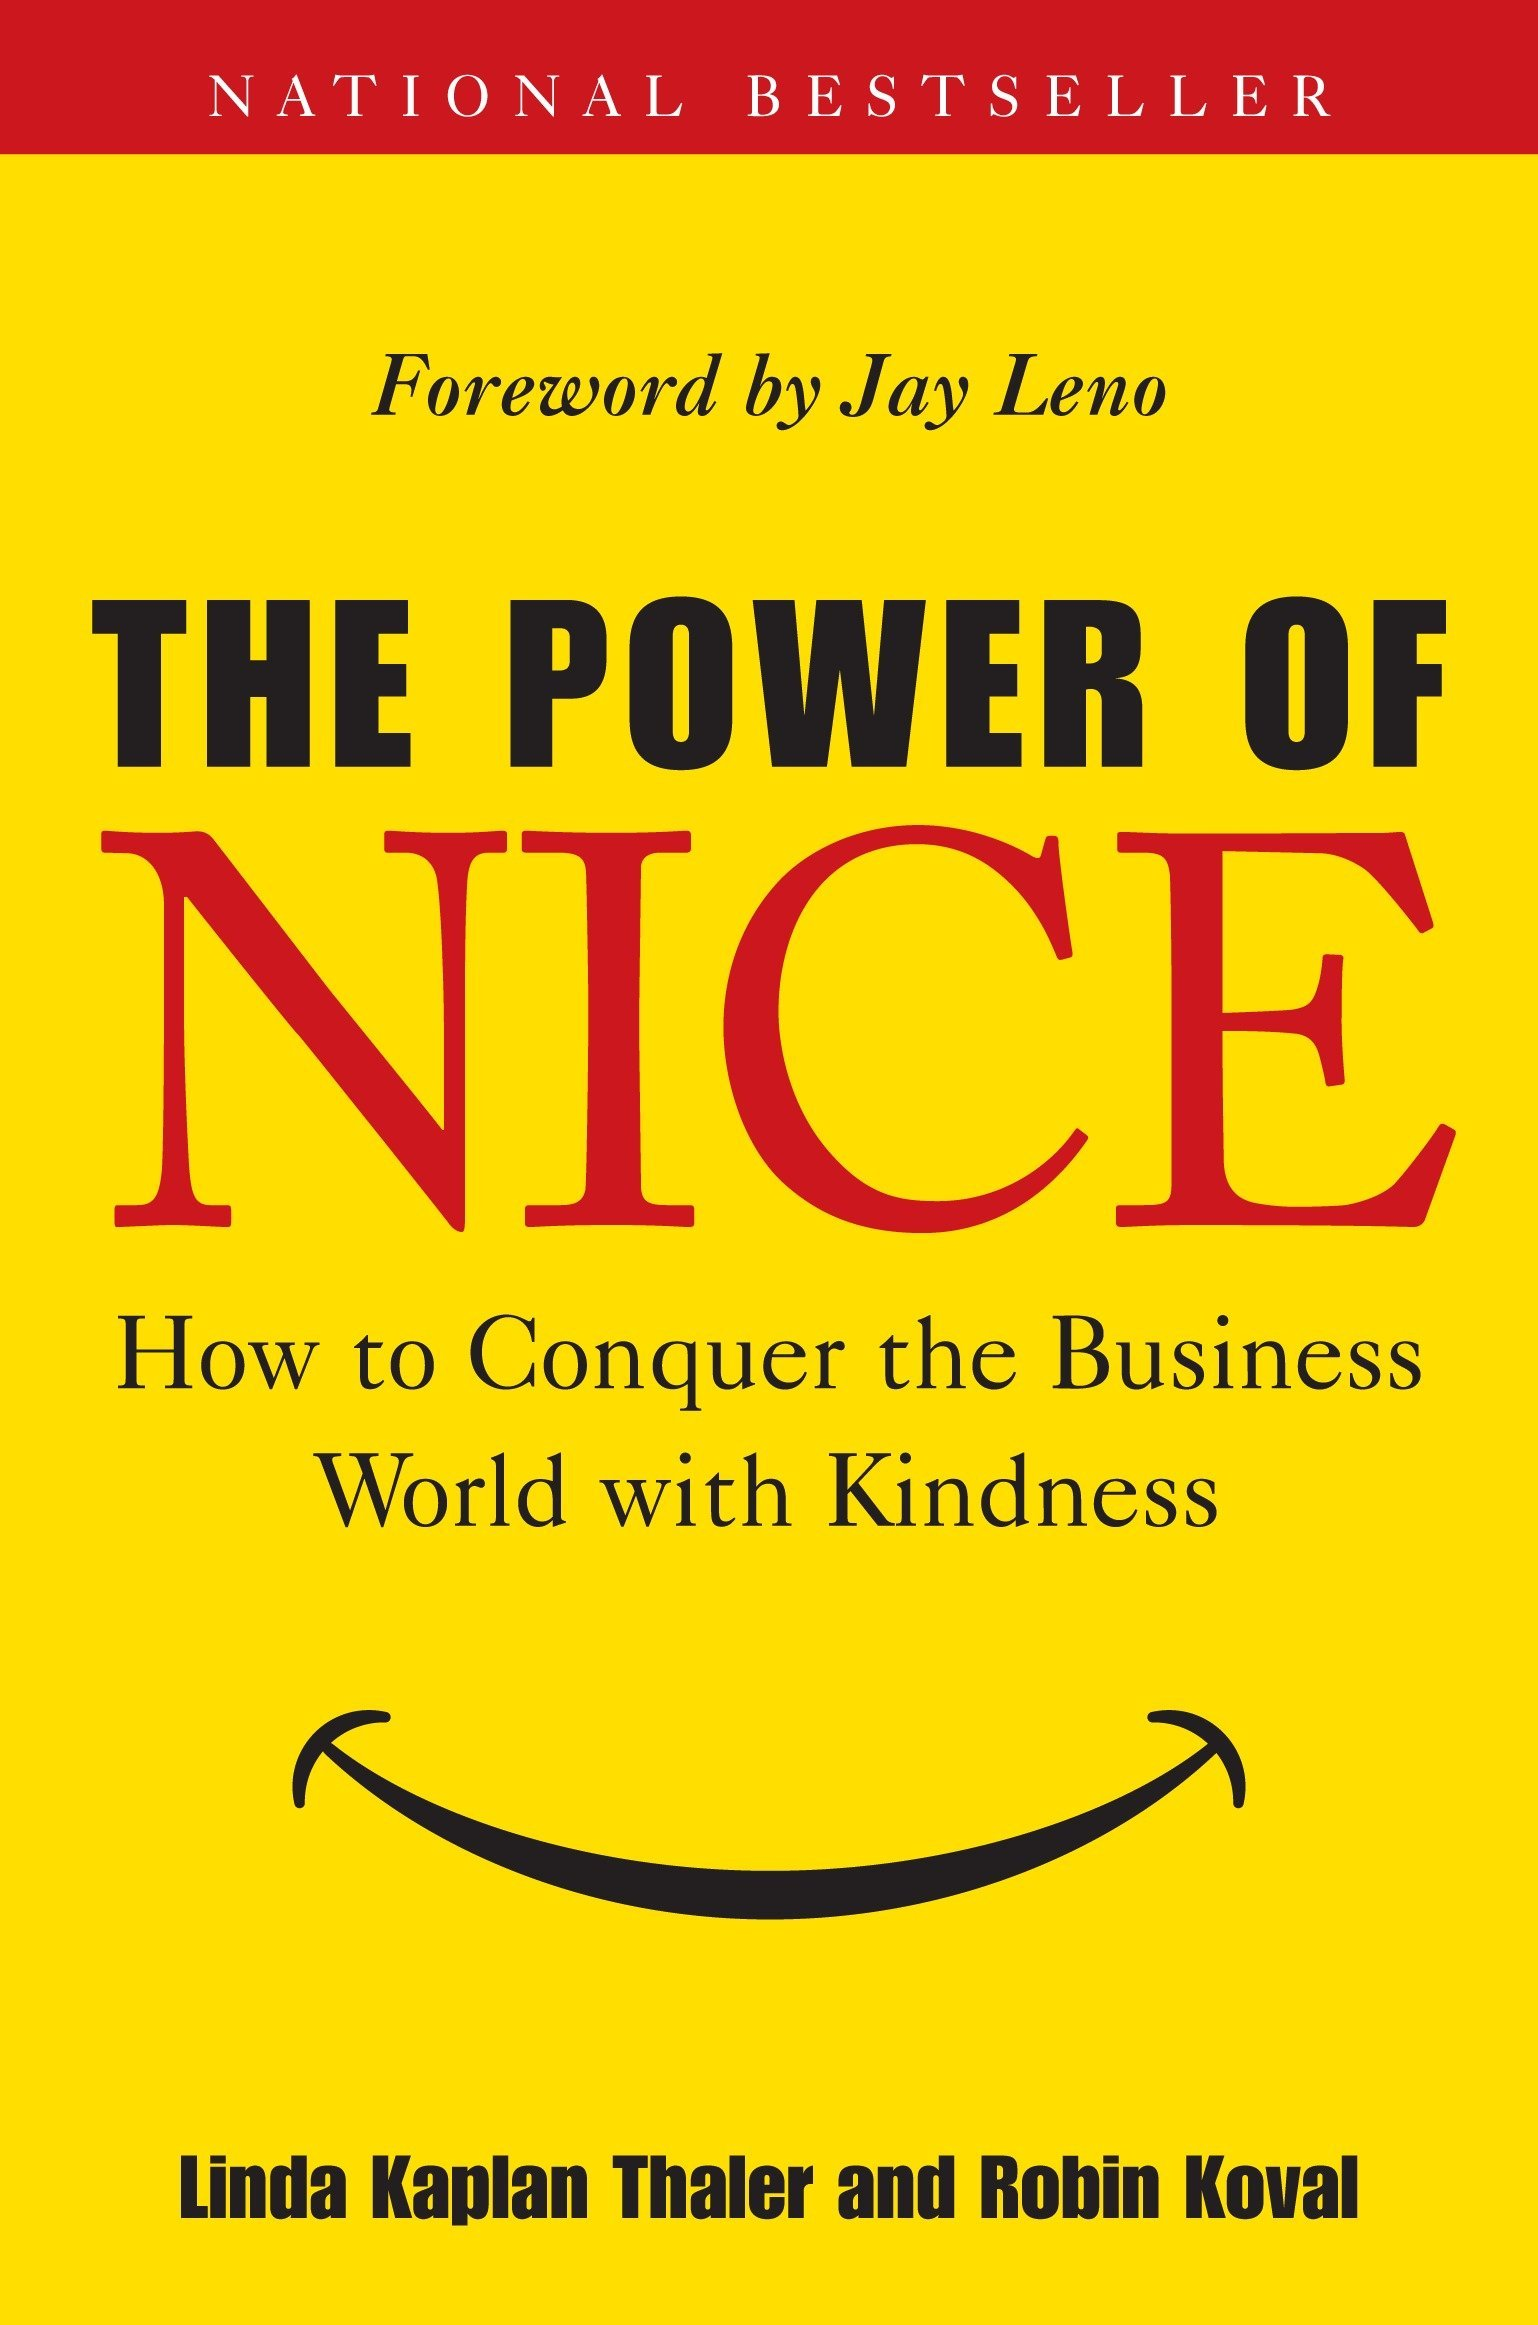 Communication on this topic: How to Increase Your Business With Kindness, how-to-increase-your-business-with-kindness/